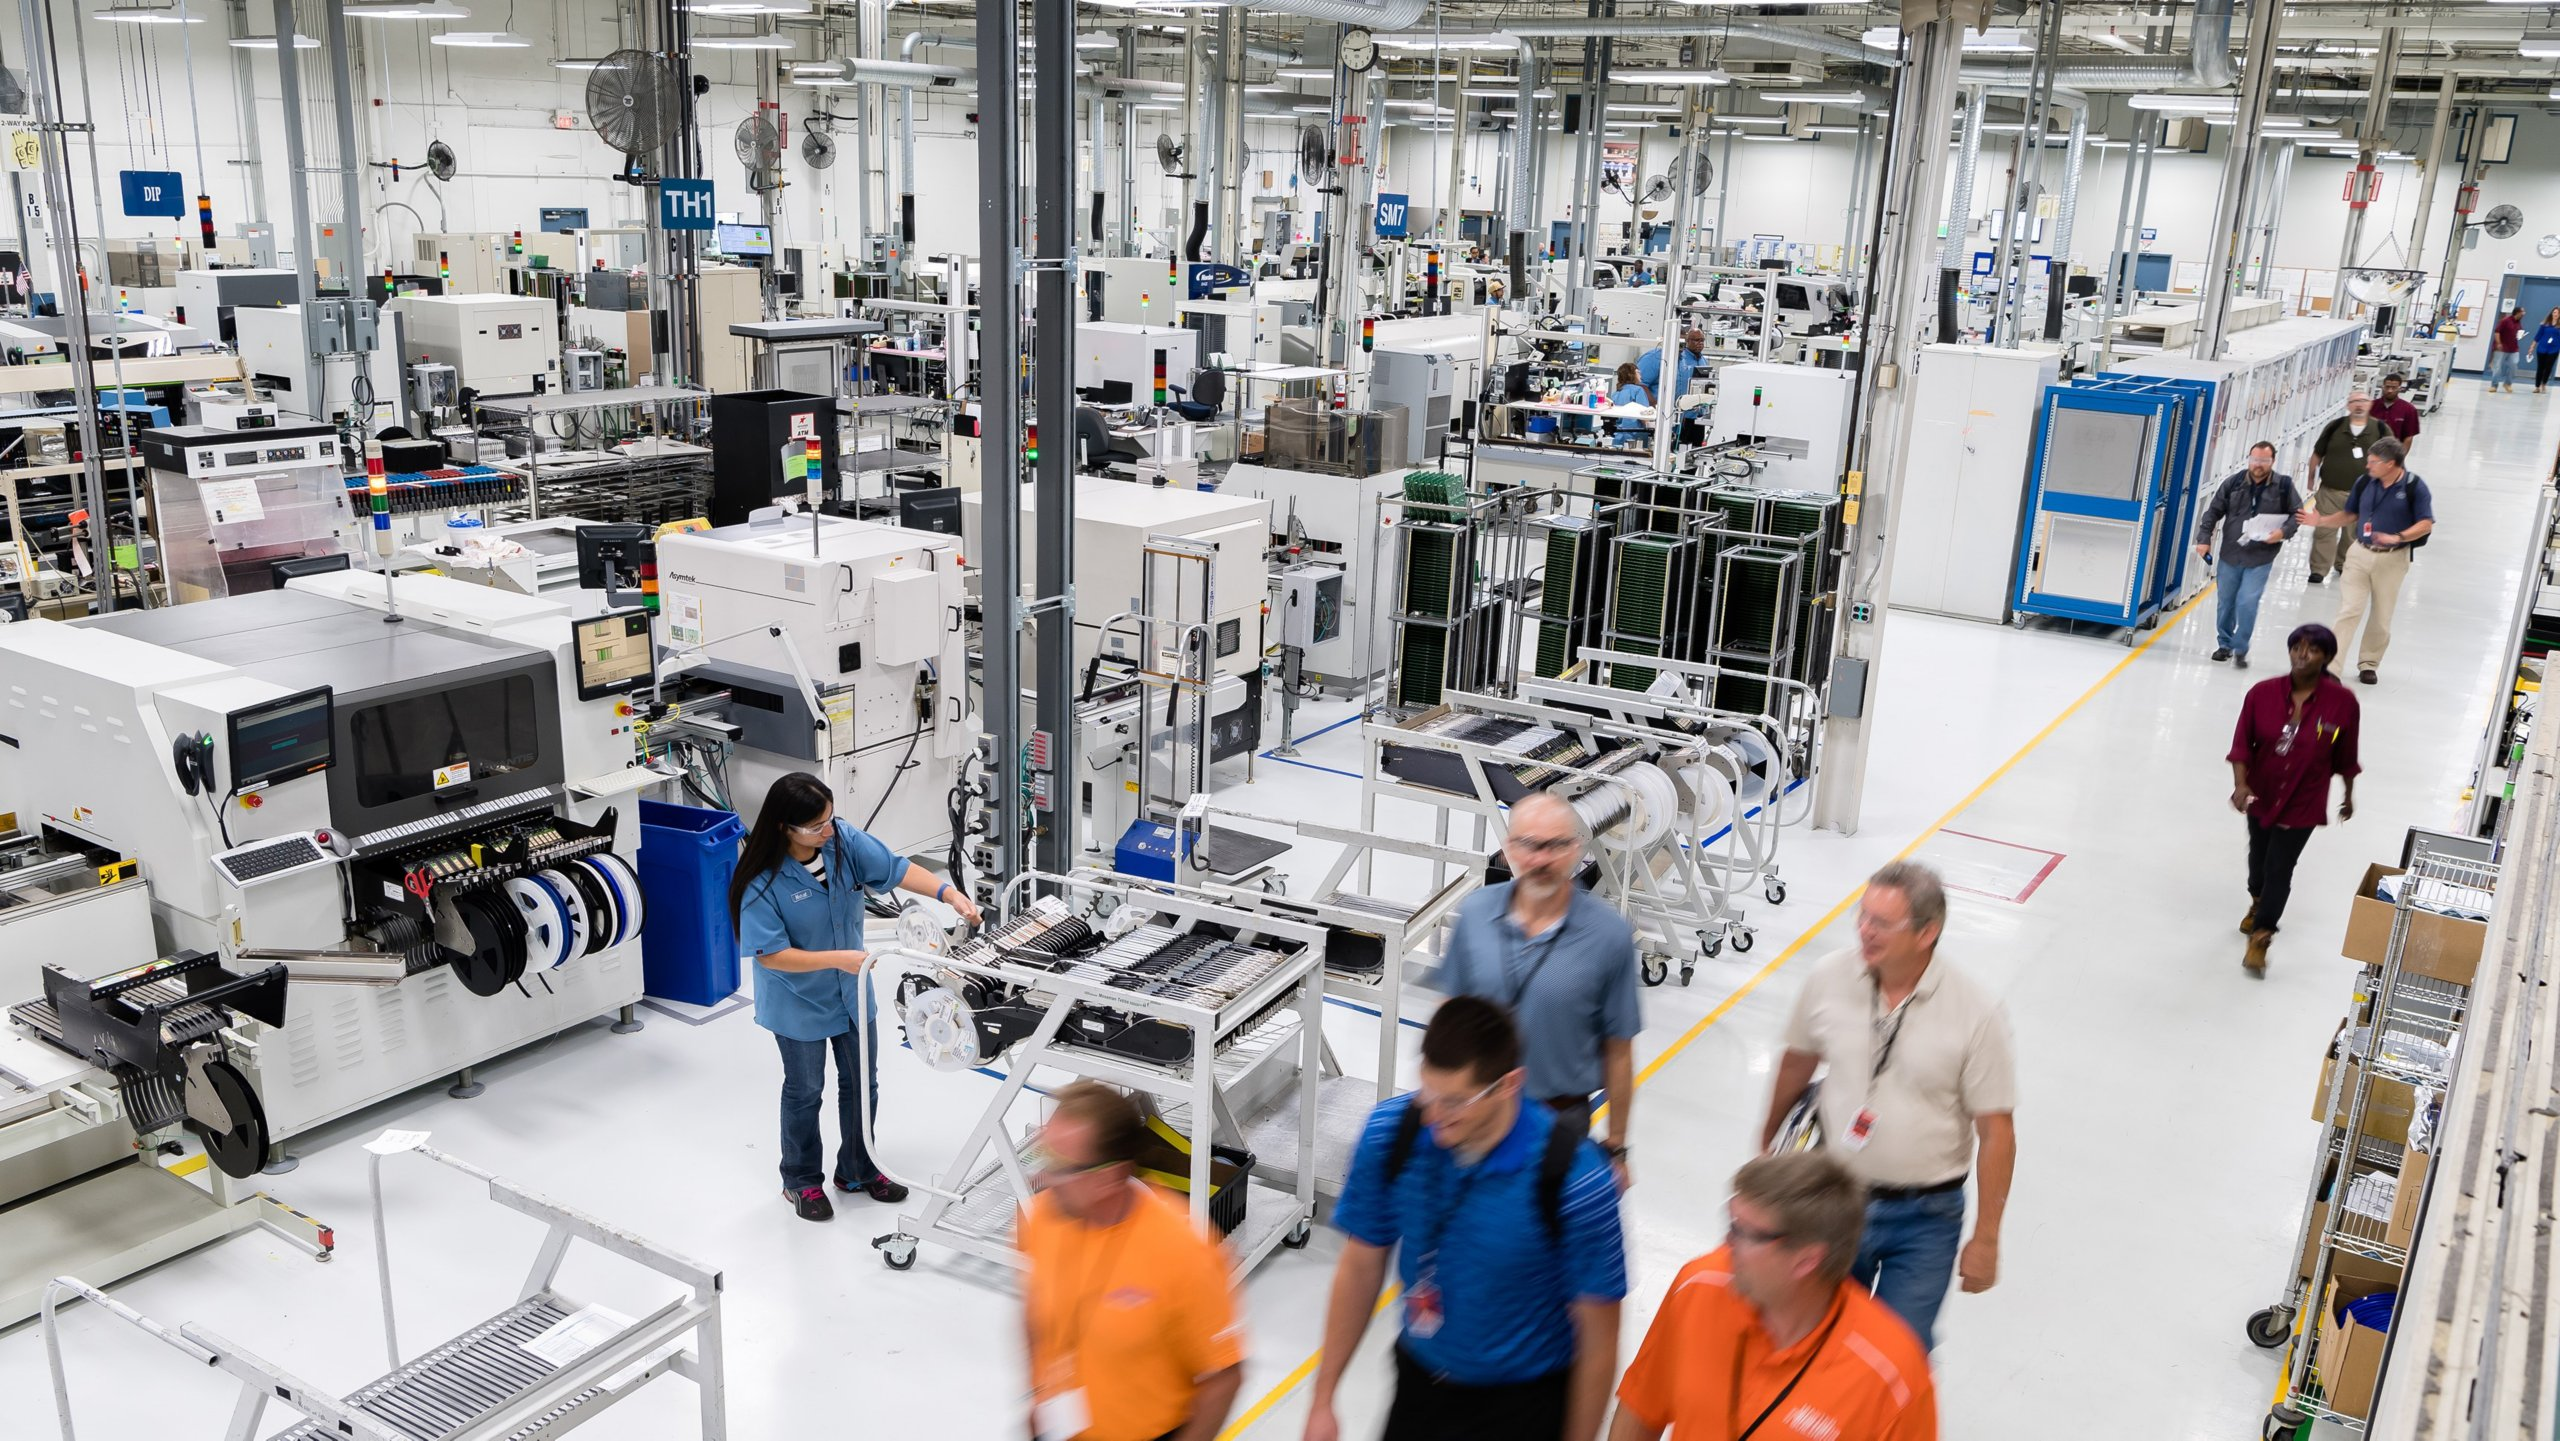 Rockwell Automation Plant in Twinsburg, Ohio   August 2017